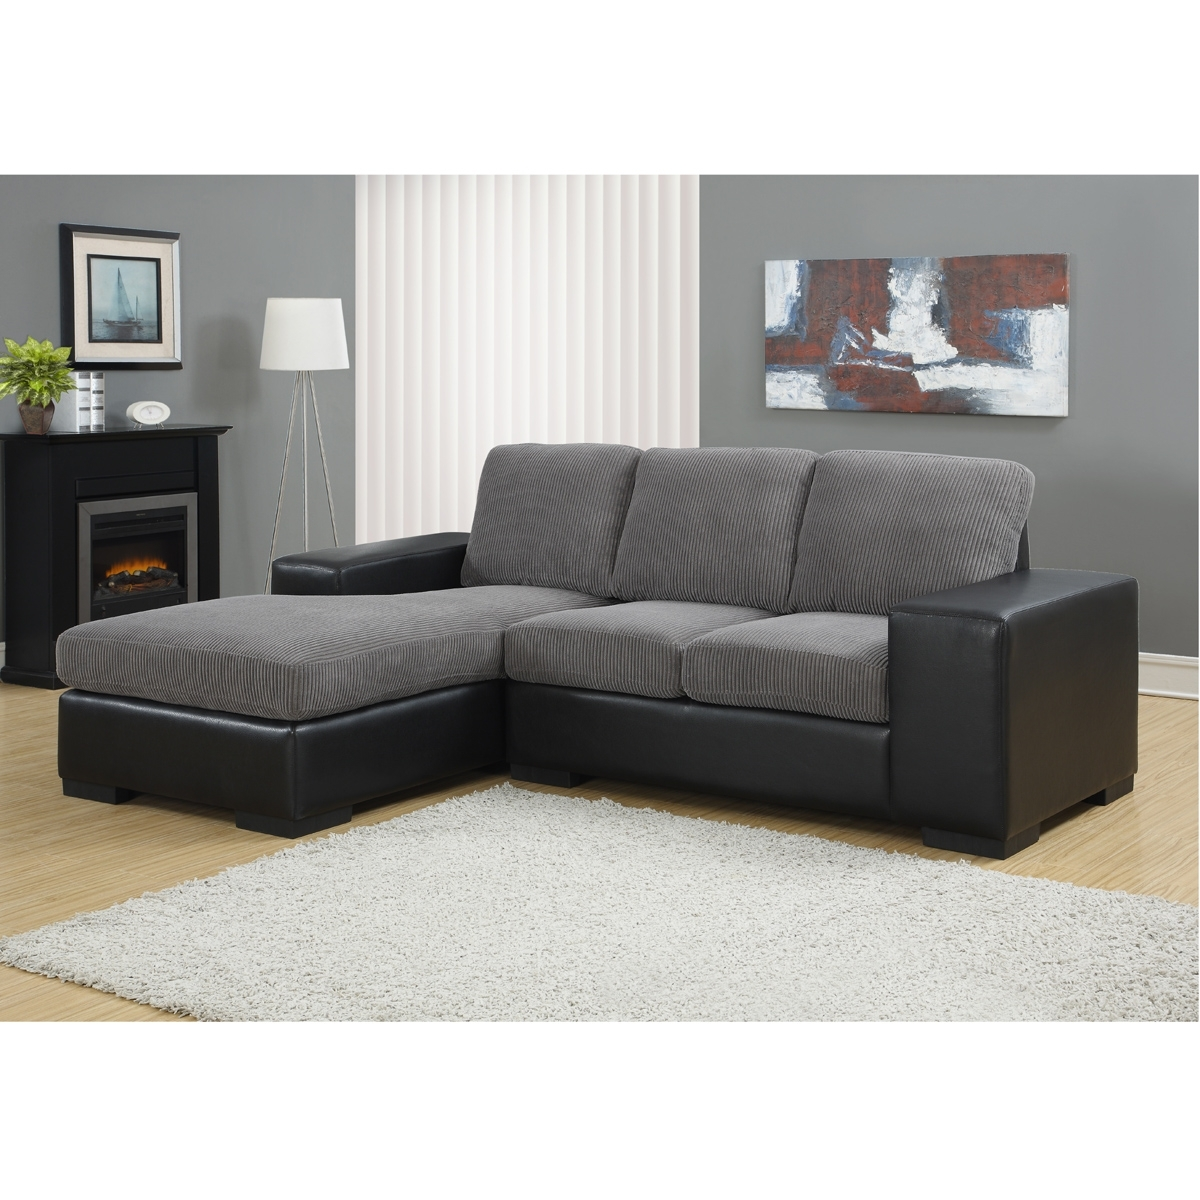 Sectional Sofas For Condos Regarding Preferred Jacob Corduroy Sofa In Grey & Black (View 11 of 15)